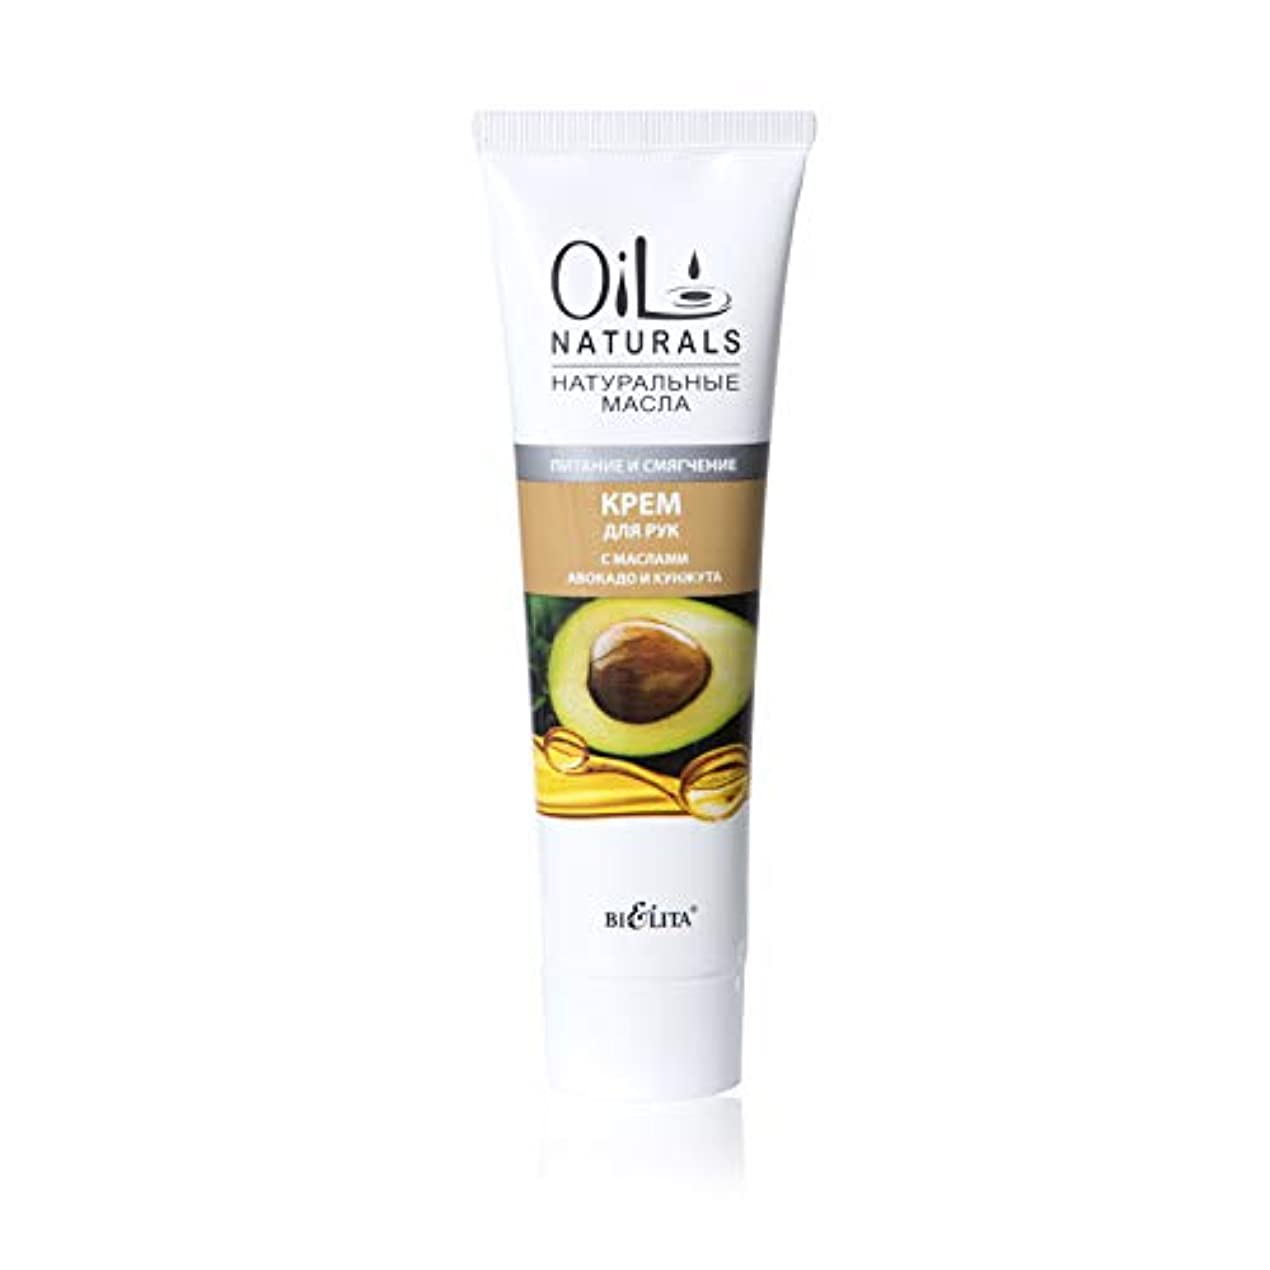 平手打ちラショナル薬Bielita & Vitex Oil Naturals Line | Nutrition & Softening Hand Cream, 100 ml | Avocado Oil, Silk Proteins, Sesame...